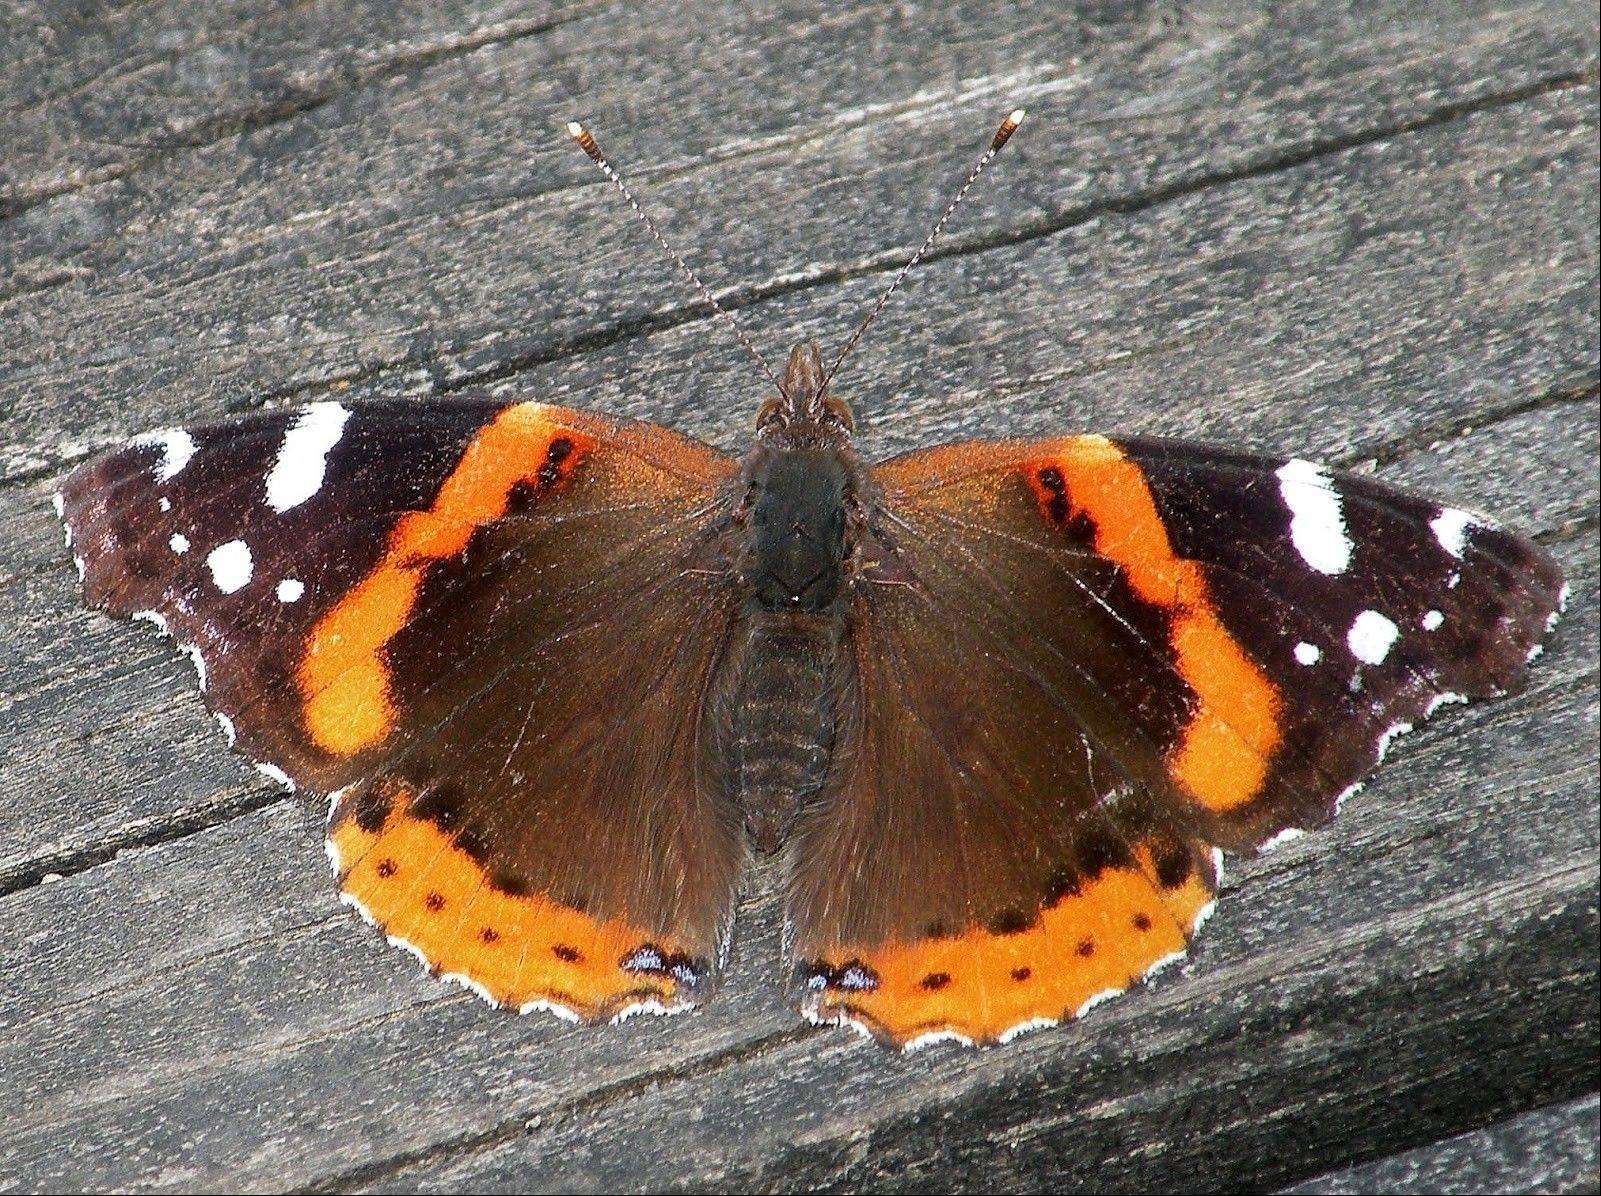 This common Red Admiral butterfly is much more common than normal this spring. Butterfly expert Doug Taron, a steward of the Bluff Spring Fen in Elgin, estimates that the population is 10 times higher than in most years.